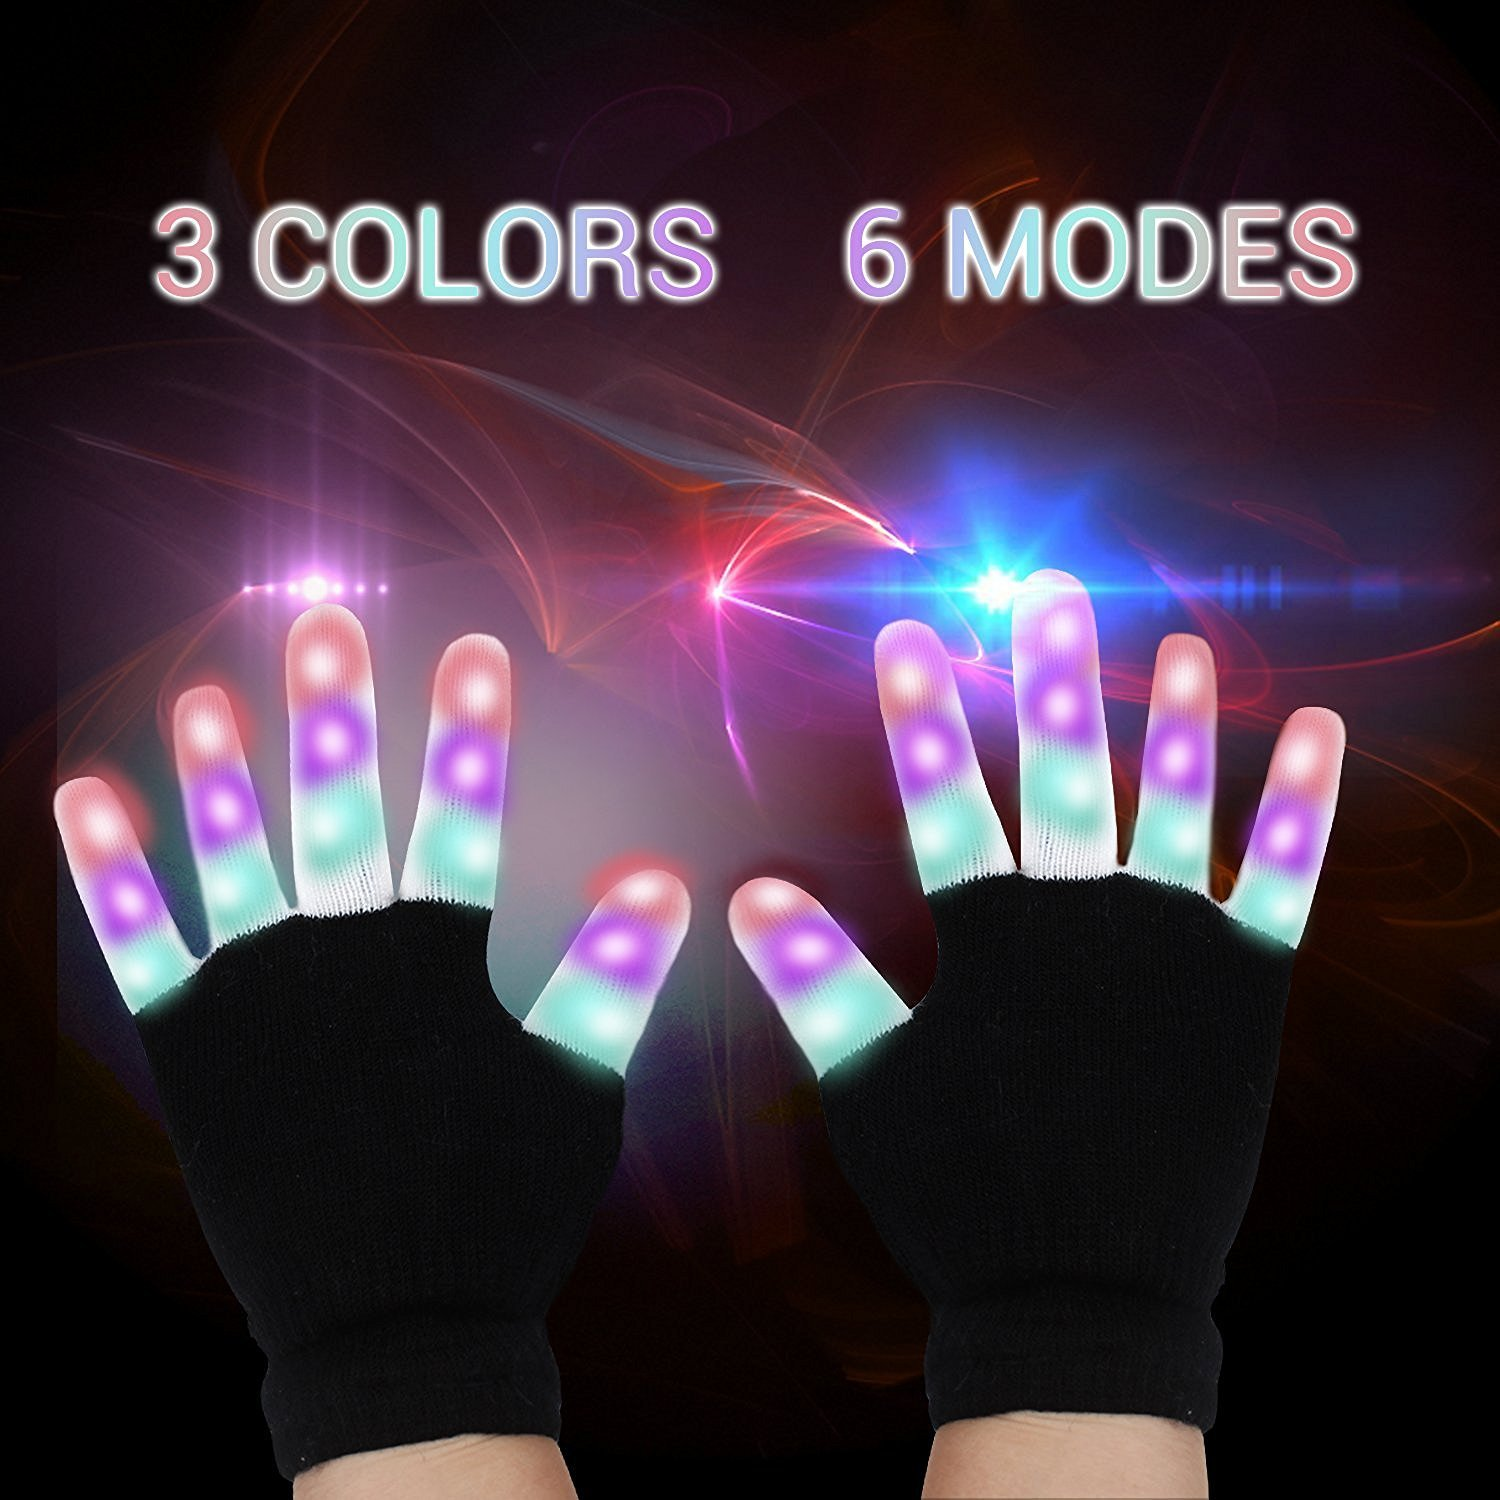 LED Gloves, Light Up Hand Gloves, Flashing Fingers Colourful Rave Gloves 6 Modes Glow for Festivals/ Halloween/ Christmas/ Bonfire Night/ Party/ Games/ Running/Gift, Fits Kid& Adult Hands(2 Pairs)